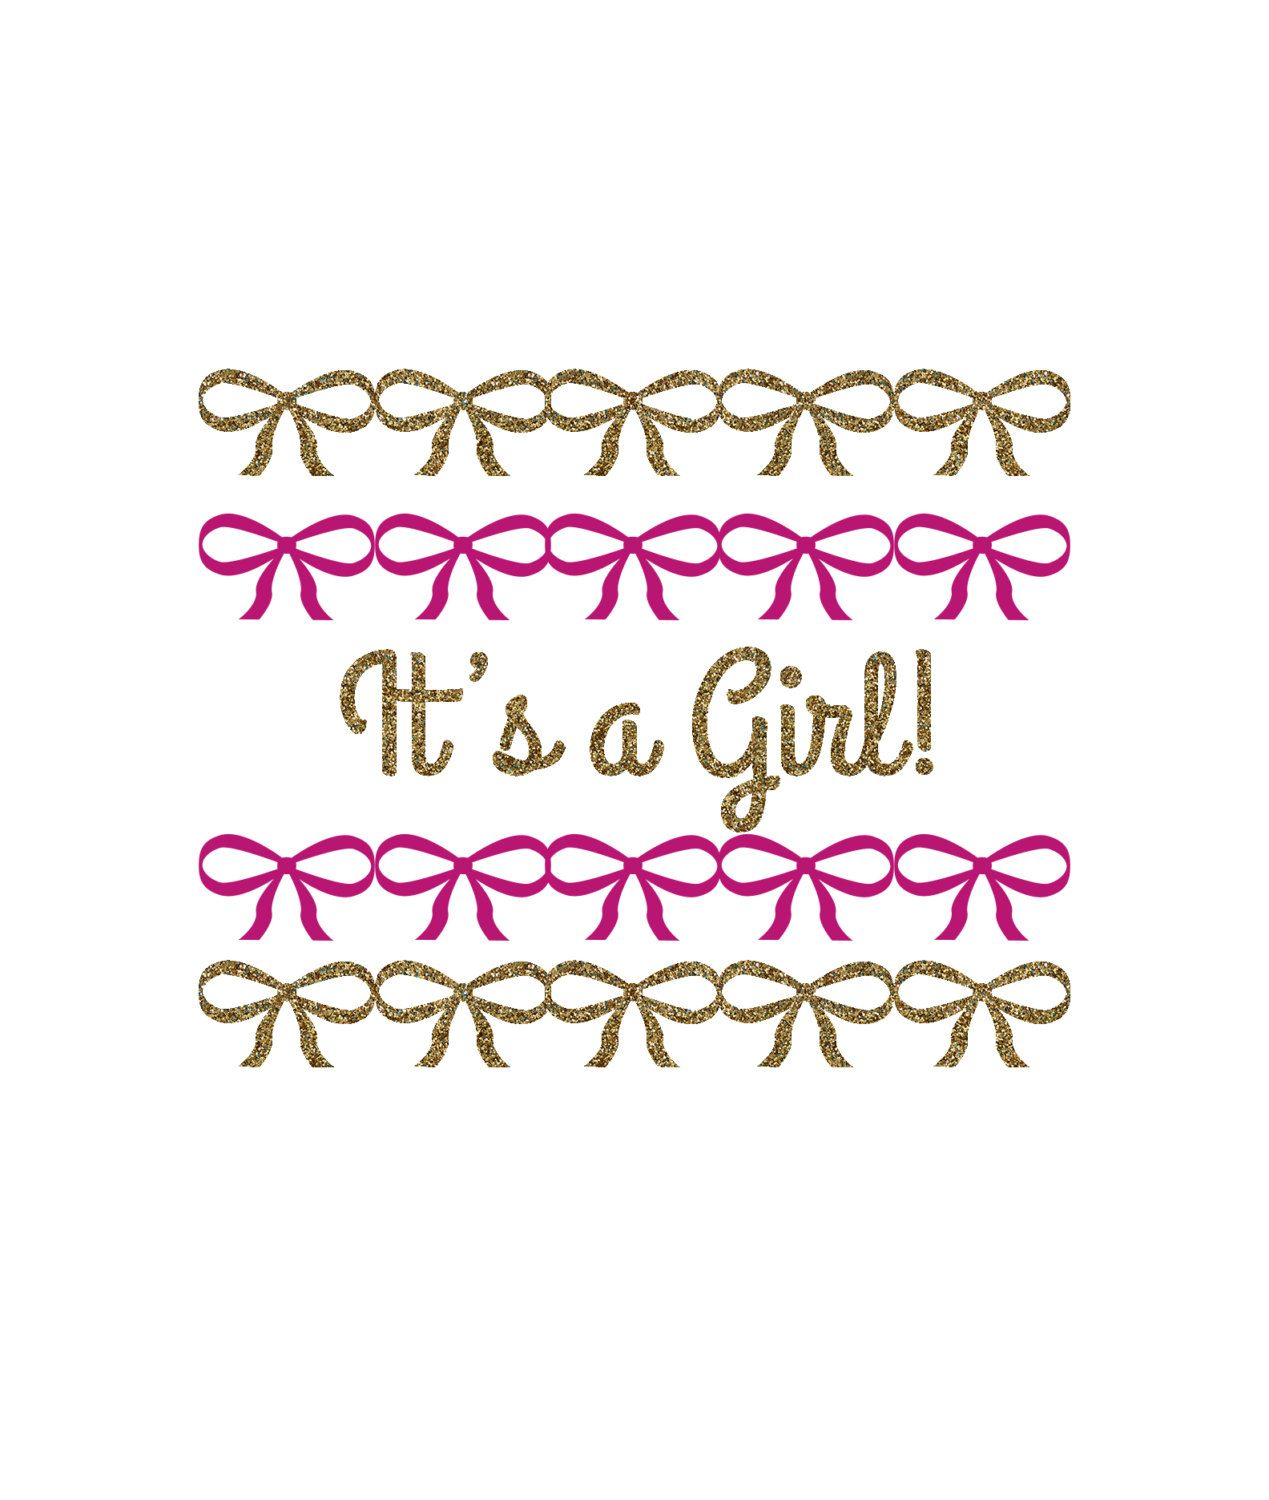 It's a Girl Bow Baby Shower Decor Design, Gift Tag, Invitation, Logo, Cupcake Topper, Gender Reveal Party, Digital Download by LunaSavita on Etsy